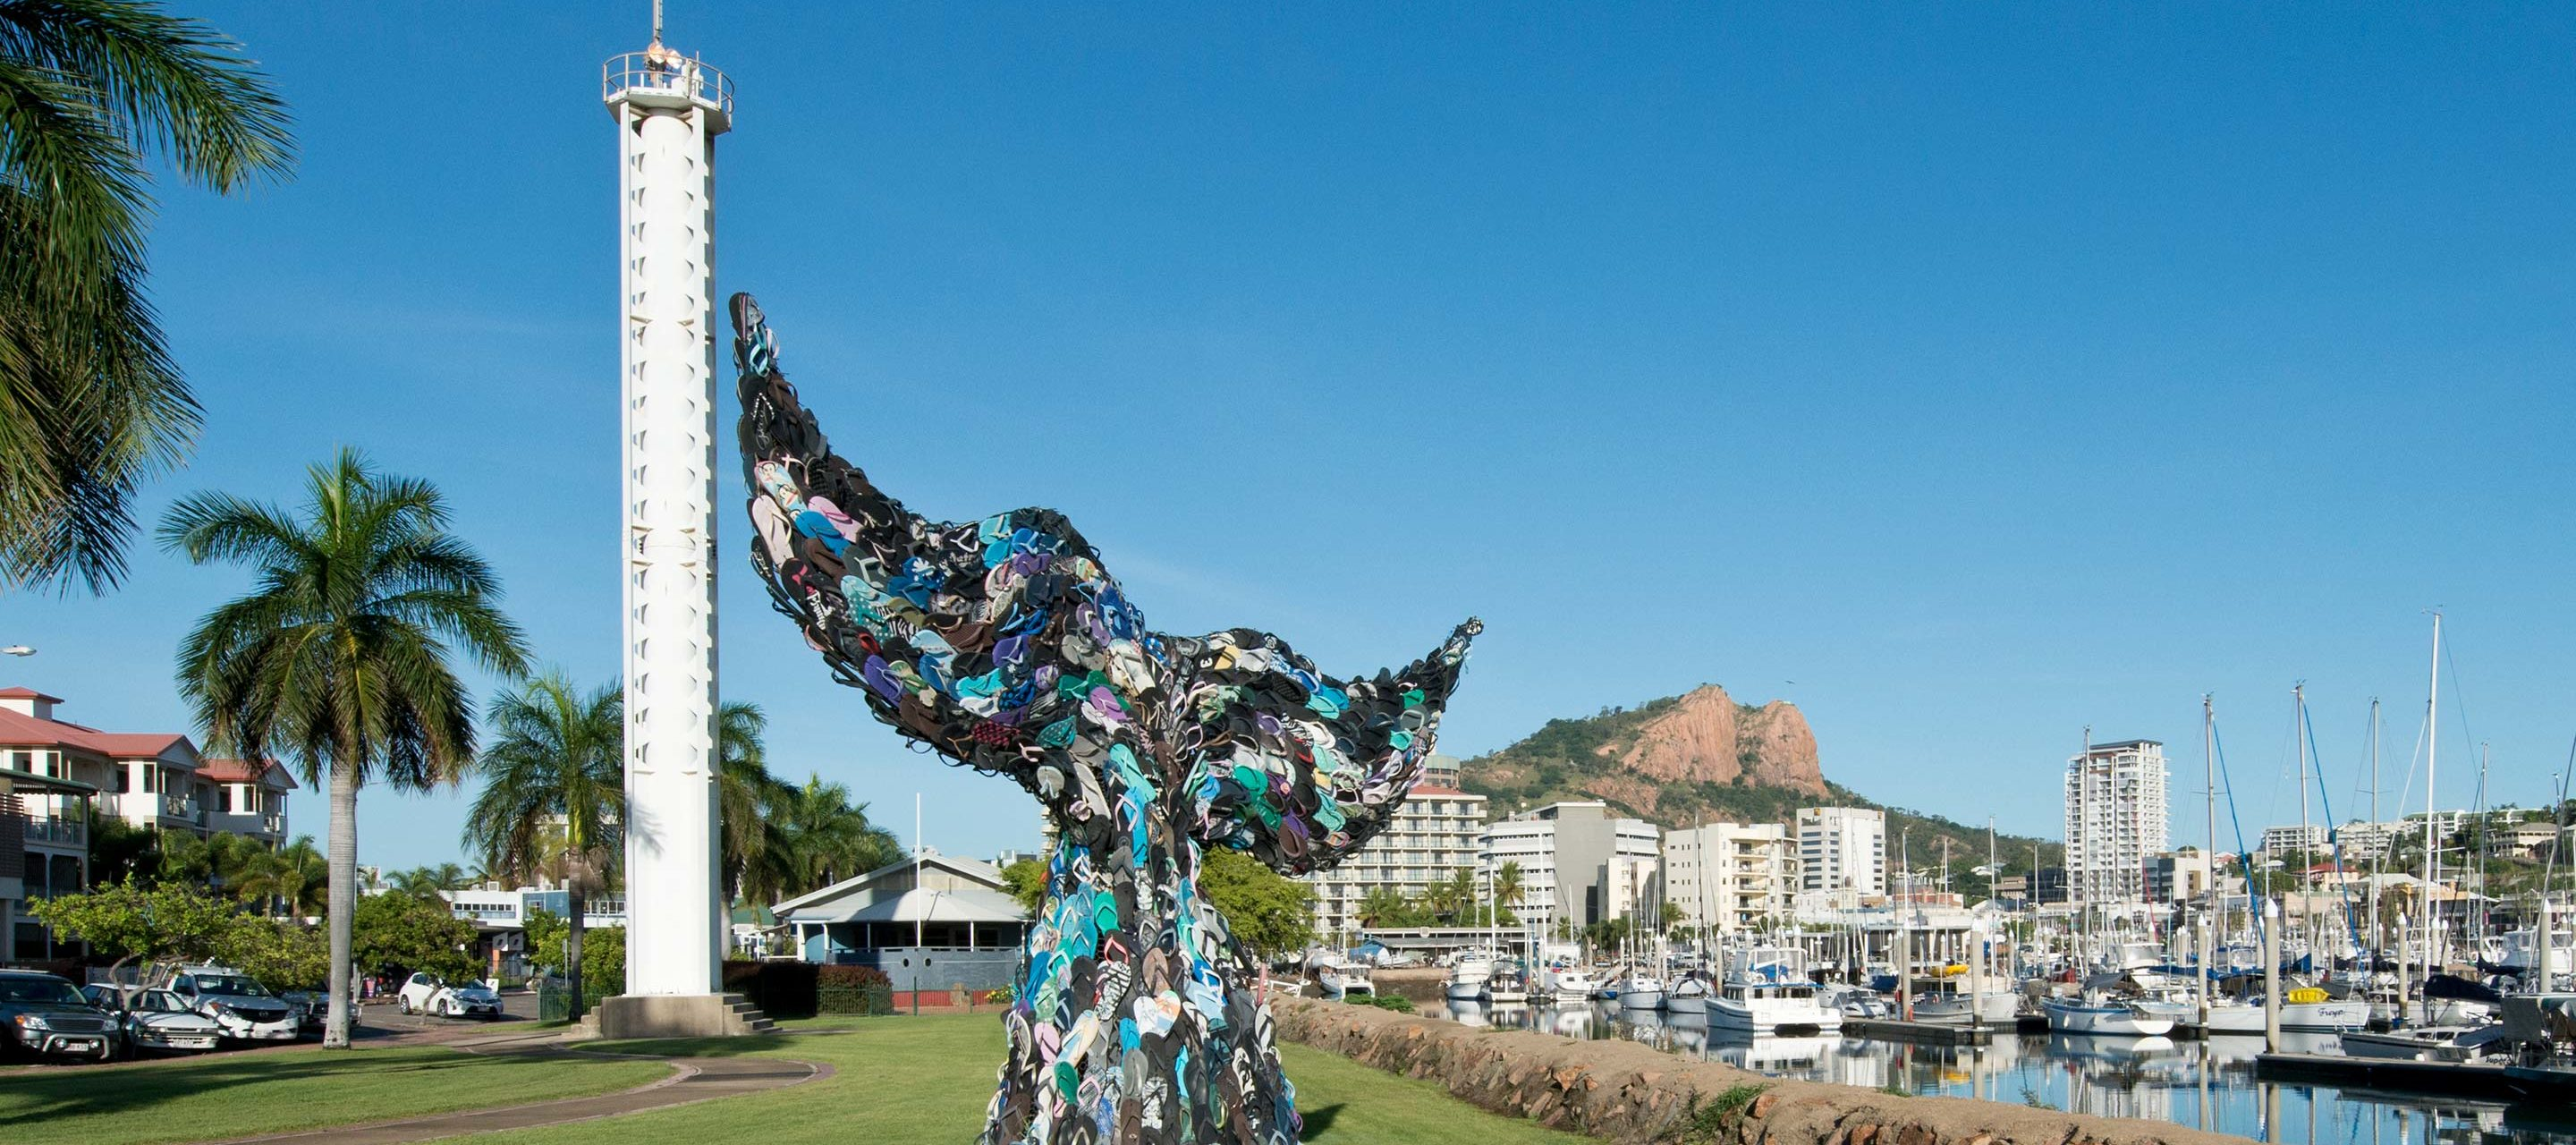 Townsville Whale Tail